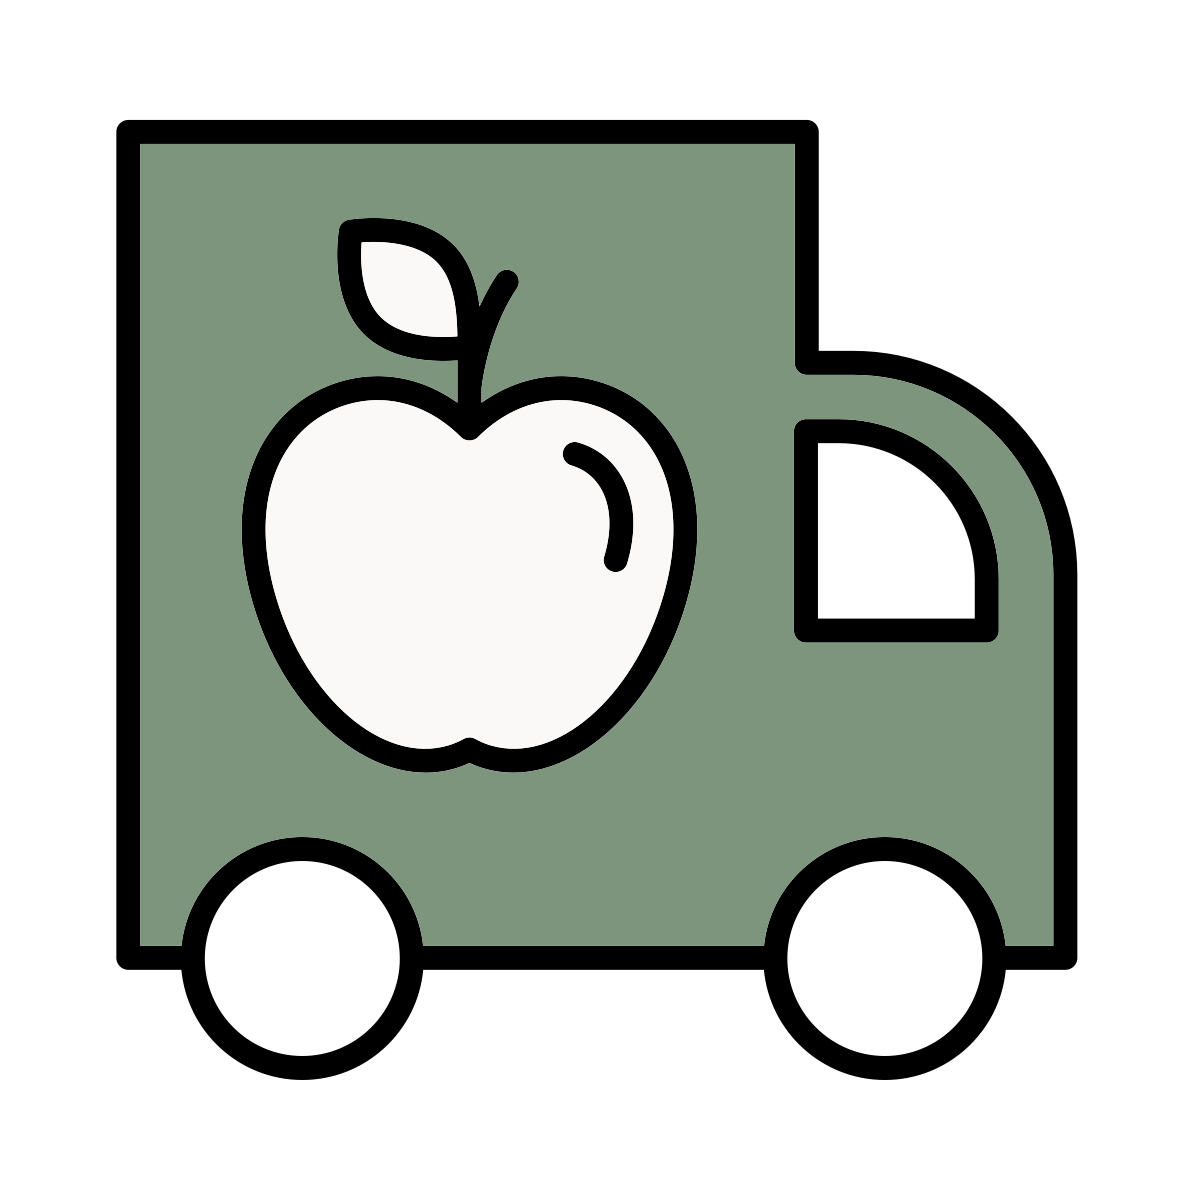 Local Food Market Co - home Delivered Groceries - online groceries - fruit and veg delivery - grocery shopping online - grocery delivery melbourne - online food shopping - fruit delivery - fruit delivery melbourne - fruit and vegetable delivery - food shopping online - melbourne grocery stores